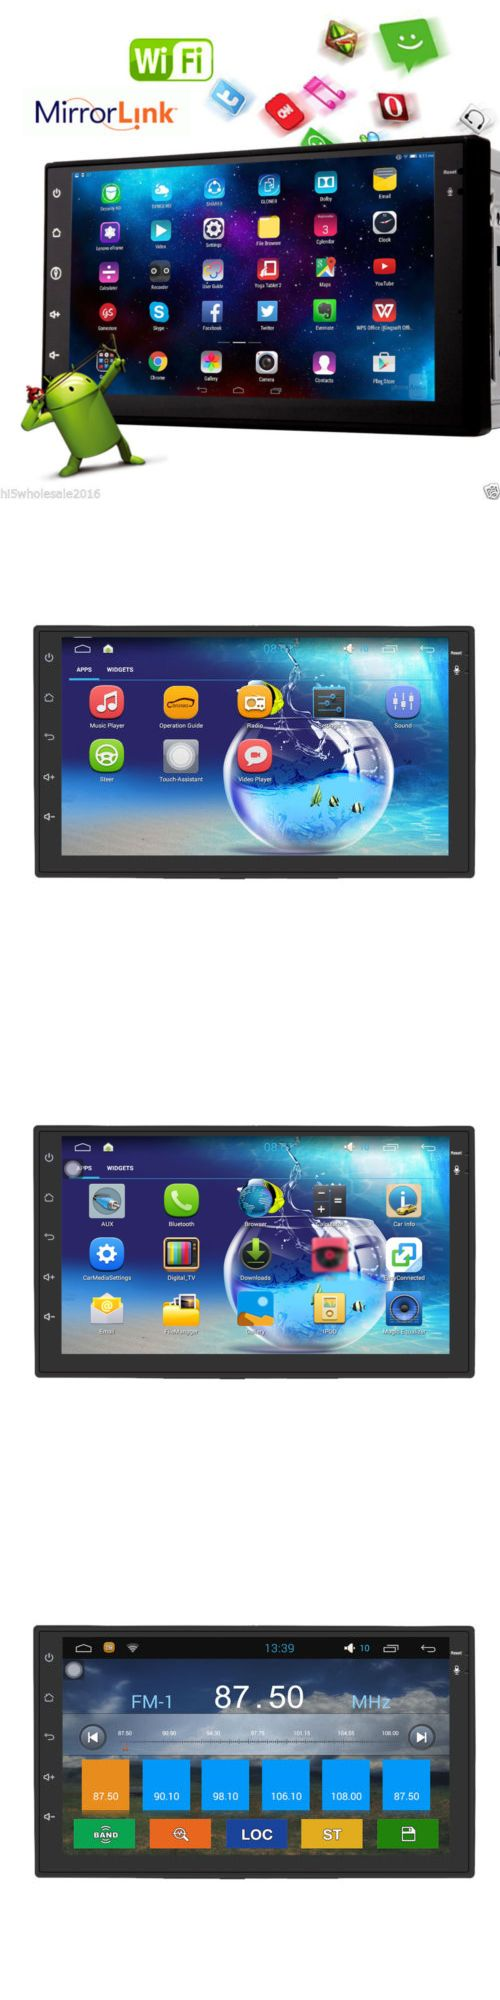 Video In-Dash Units w GPS: Hd 7 Android 4.4 3G-Wifi 2Din Car Stereo Radio In Dash Pc Tablet Gps Nav+Camera BUY IT NOW ONLY: $156.95